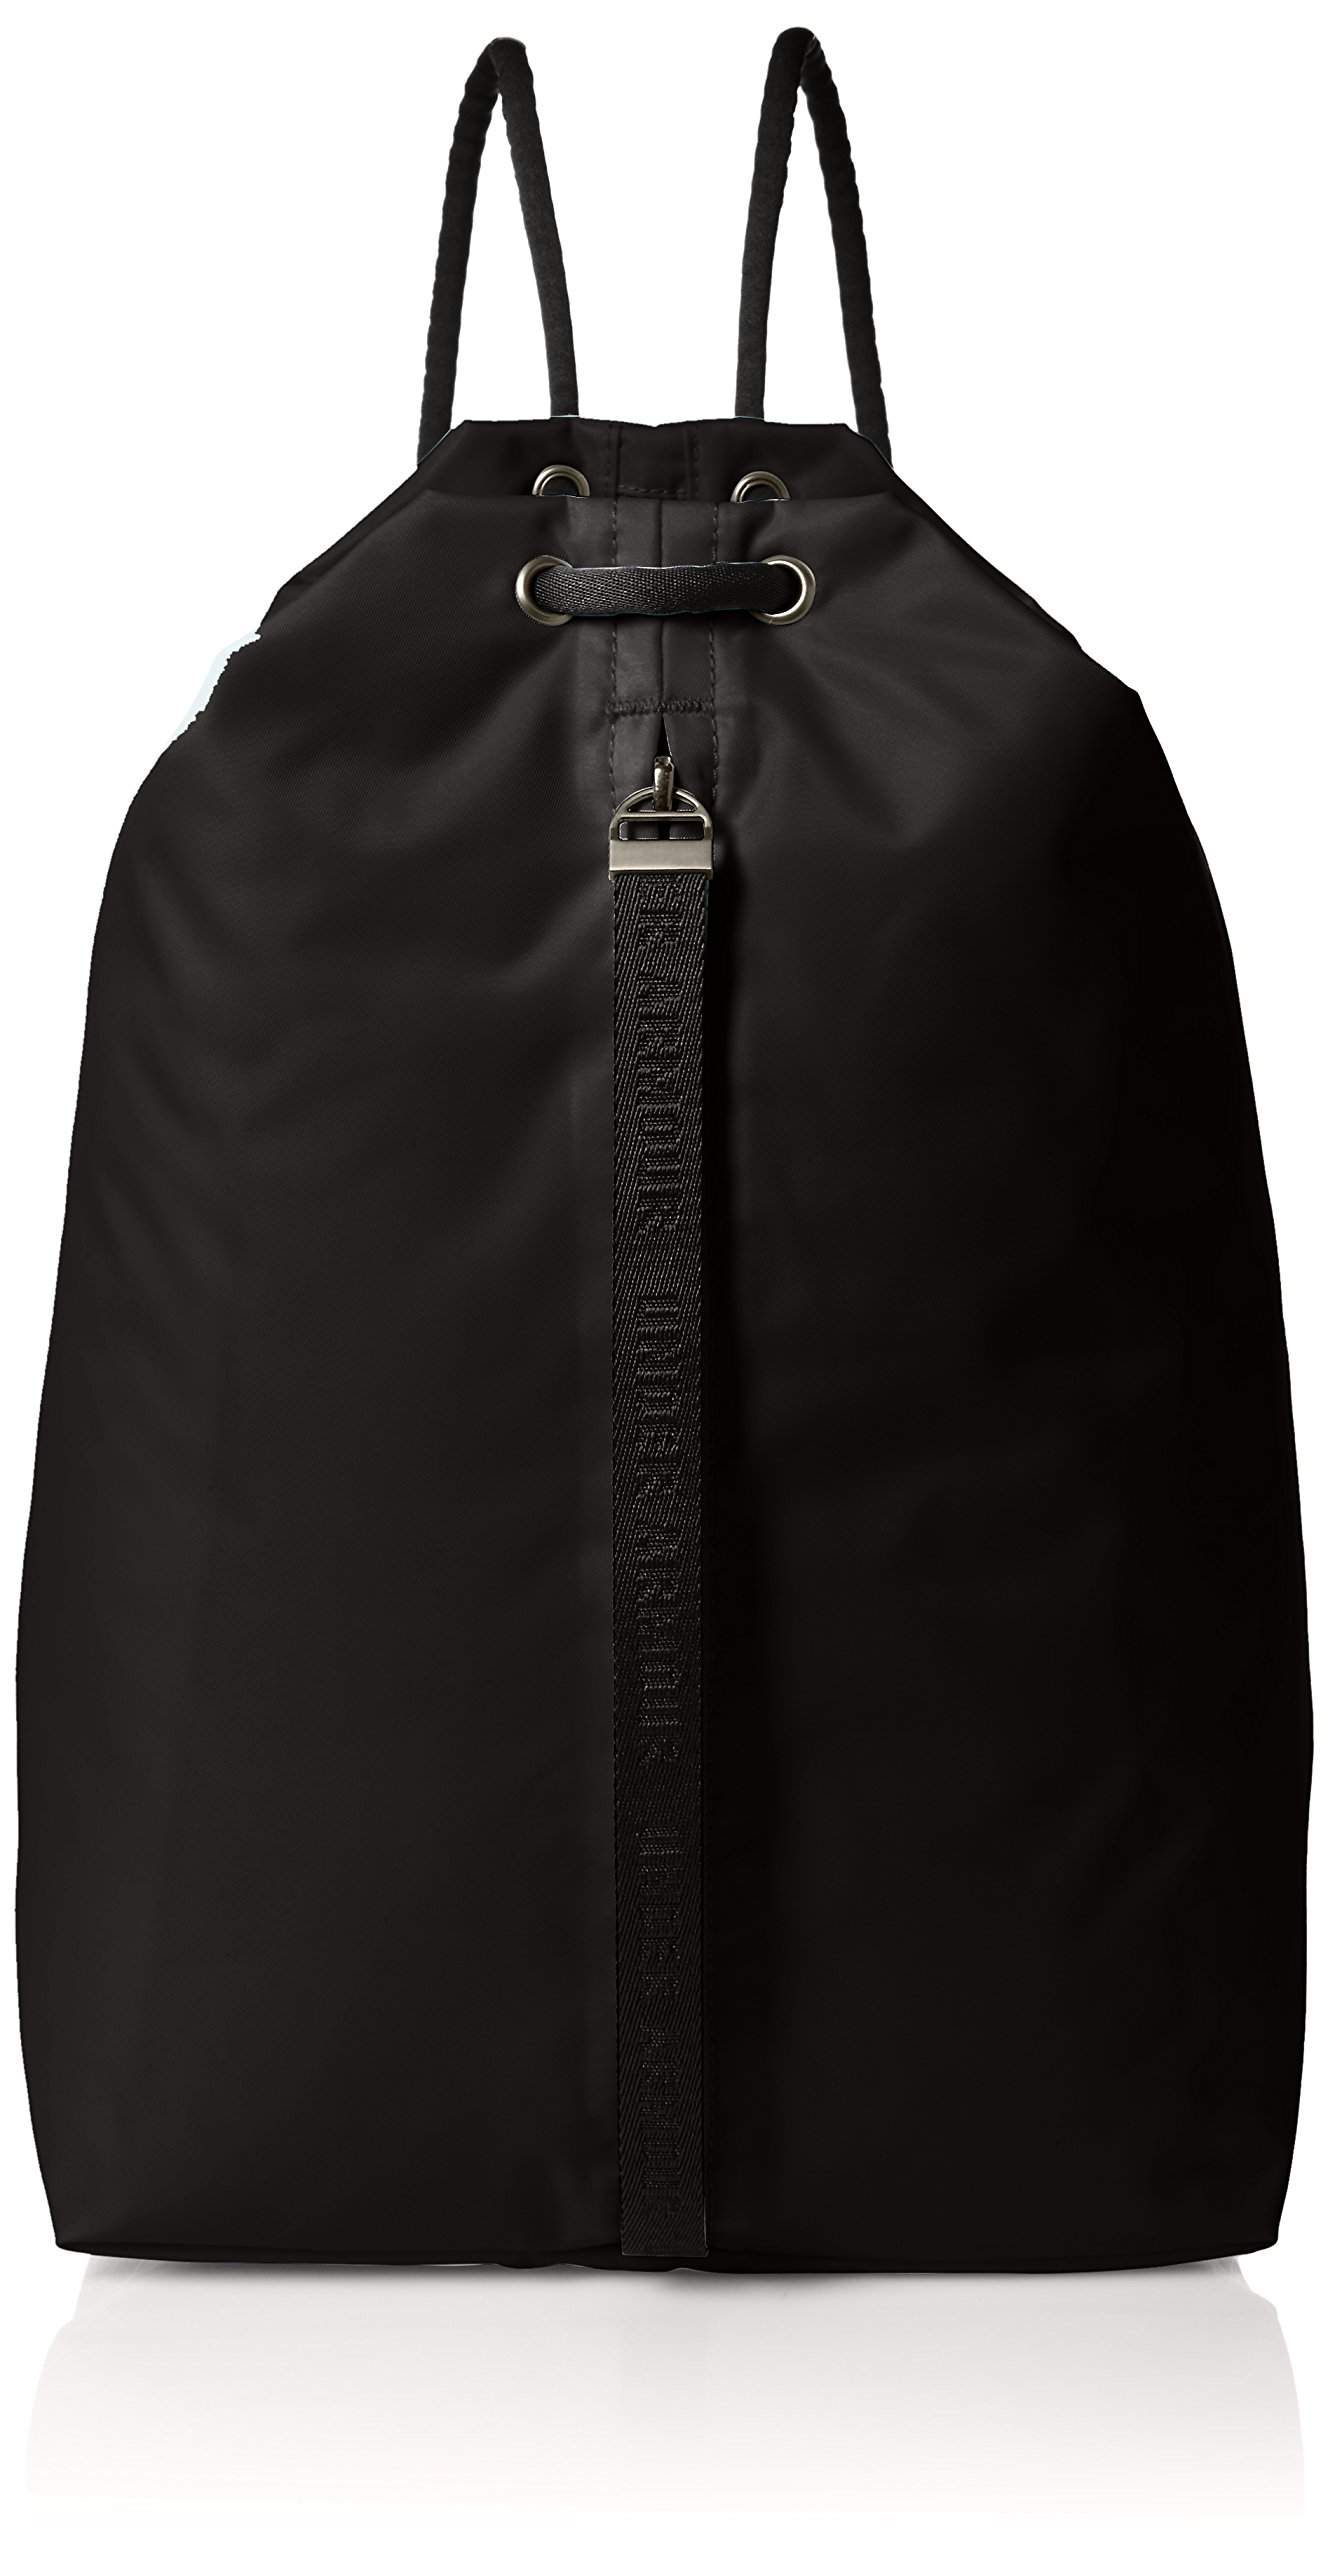 Under Armour Women's Essentials Sackpack, Black (001)/White, One Size